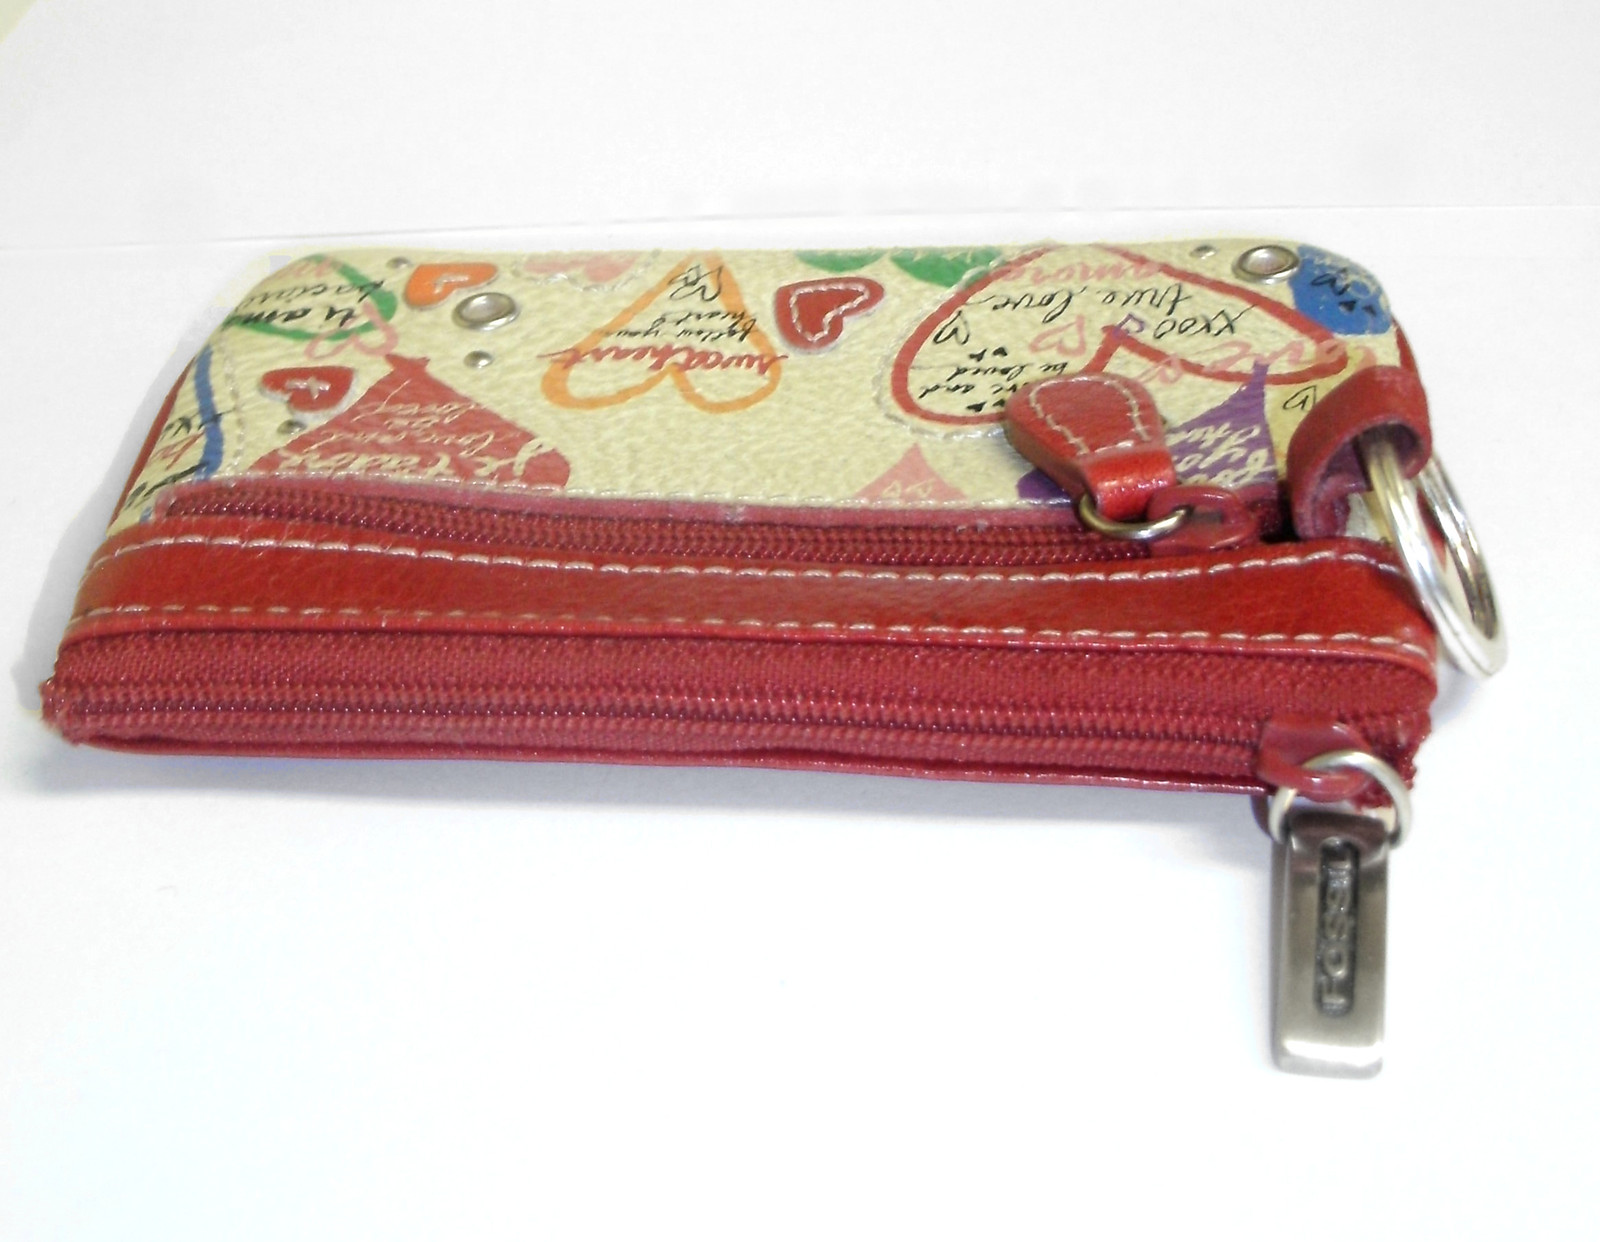 Fossil Mini ID Wallet Coin Purse Red Leather Heart Love Keychain image 4